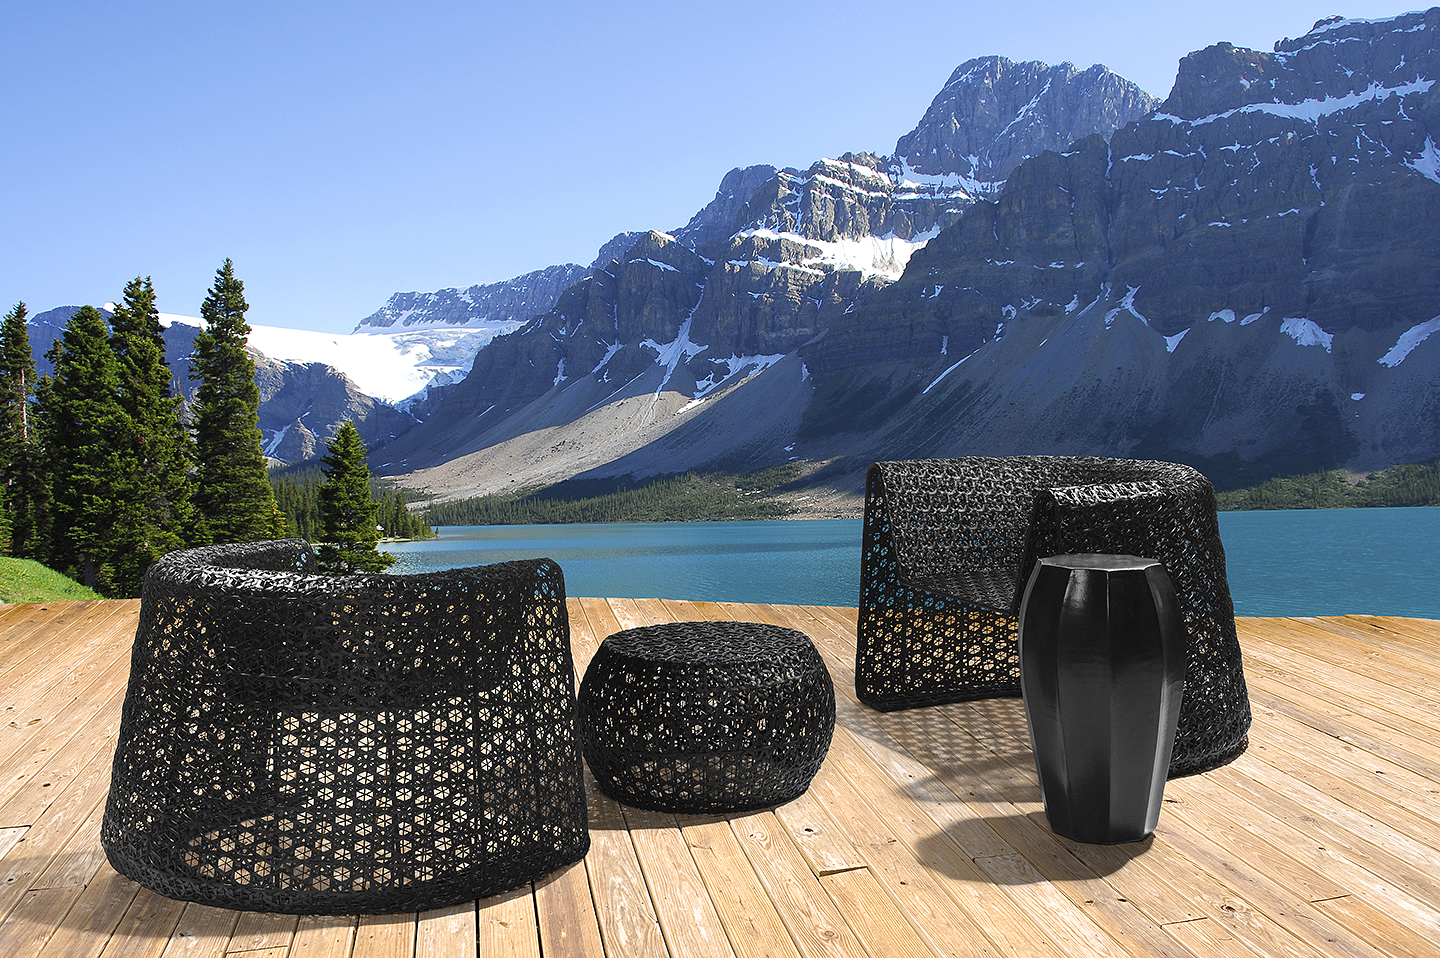 High Quality Outdoor Furniture For Your Home Oasis